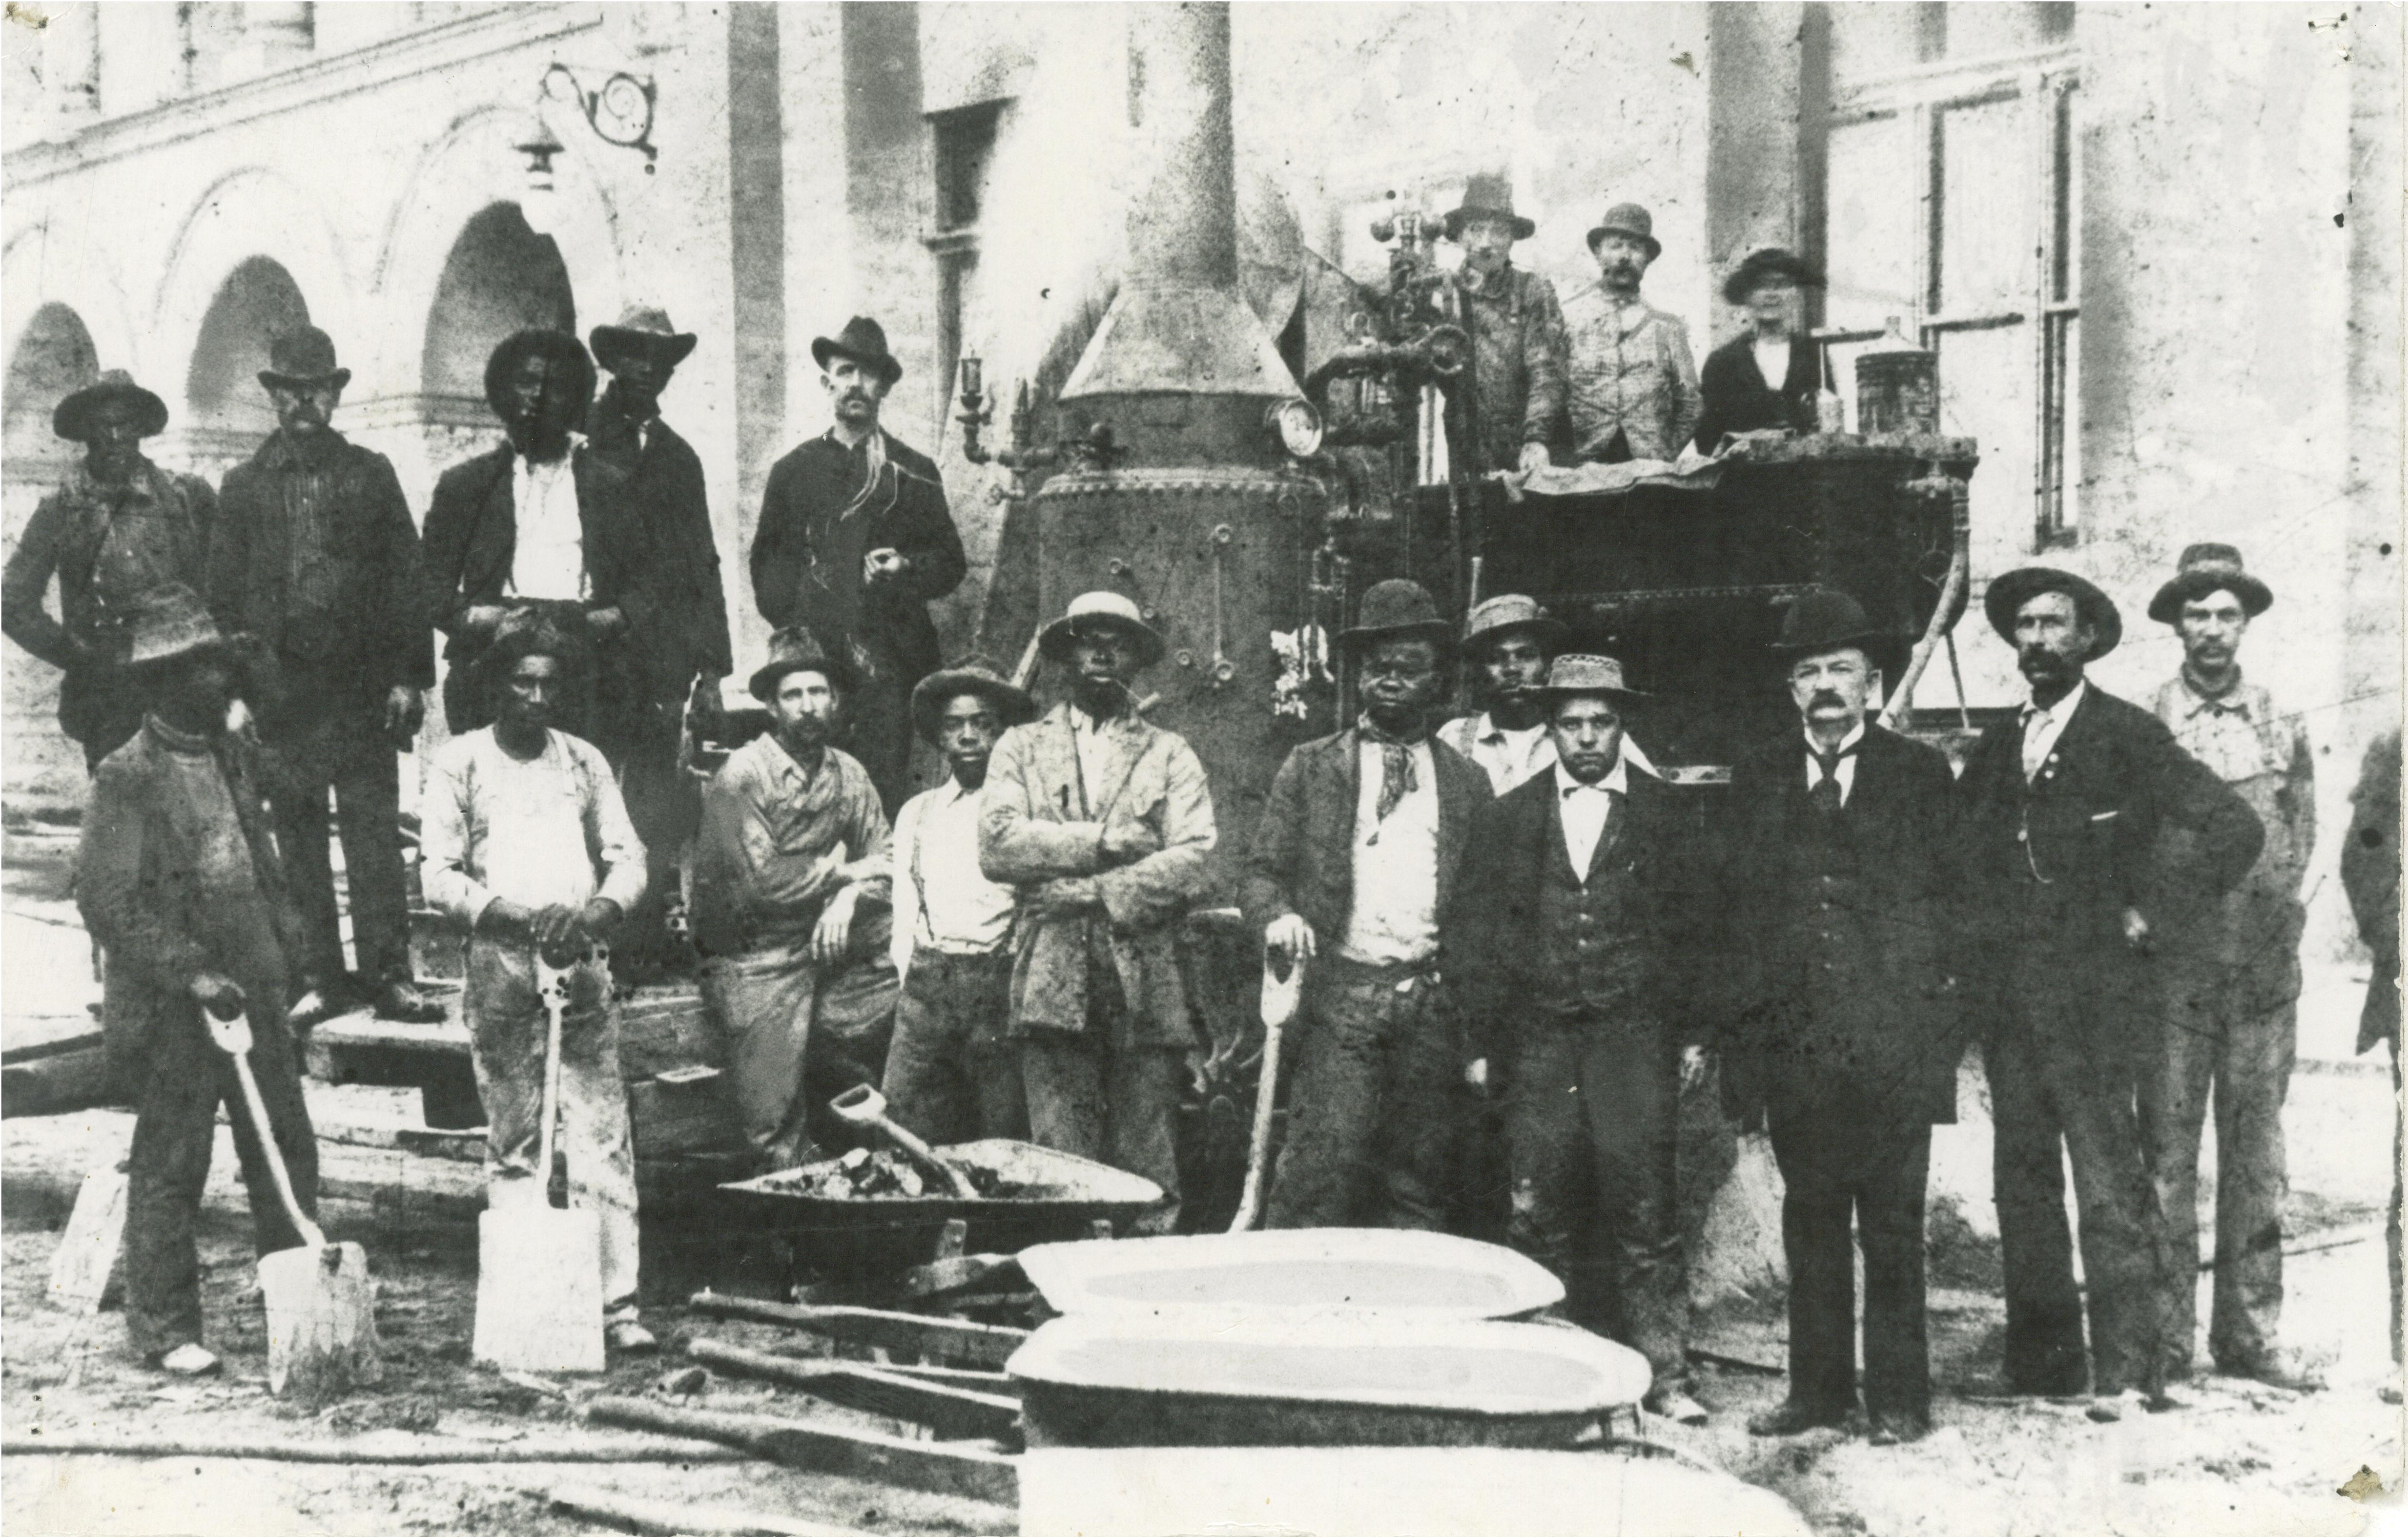 <table class=&quot;lightbox&quot;><tr><td colspan=2 class=&quot;lightbox-title&quot;>Construction Workers at City Hall</td></tr><tr><td colspan=2 class=&quot;lightbox-caption&quot;>A group of African American construction workers, along with some Caucasian men, pose for a photograph as they work on Milwaukee's City Hall in 1896. </td></tr><tr><td colspan=2 class=&quot;lightbox-spacer&quot;></td></tr><tr class=&quot;lightbox-detail&quot;><td class=&quot;cell-title&quot;>Source: </td><td class=&quot;cell-value&quot;>From the Historic Photo Collection of the Milwaukee Public Library. Reprinted with permission.<br /><a href=&quot;http://content.mpl.org/cdm/singleitem/collection/HstoricPho/id/3764/rec/15&quot; target=&quot;_blank&quot;>Milwaukee Public Library</a></td></tr><tr class=&quot;filler-row&quot;><td colspan=2>&nbsp;</td></tr></table>